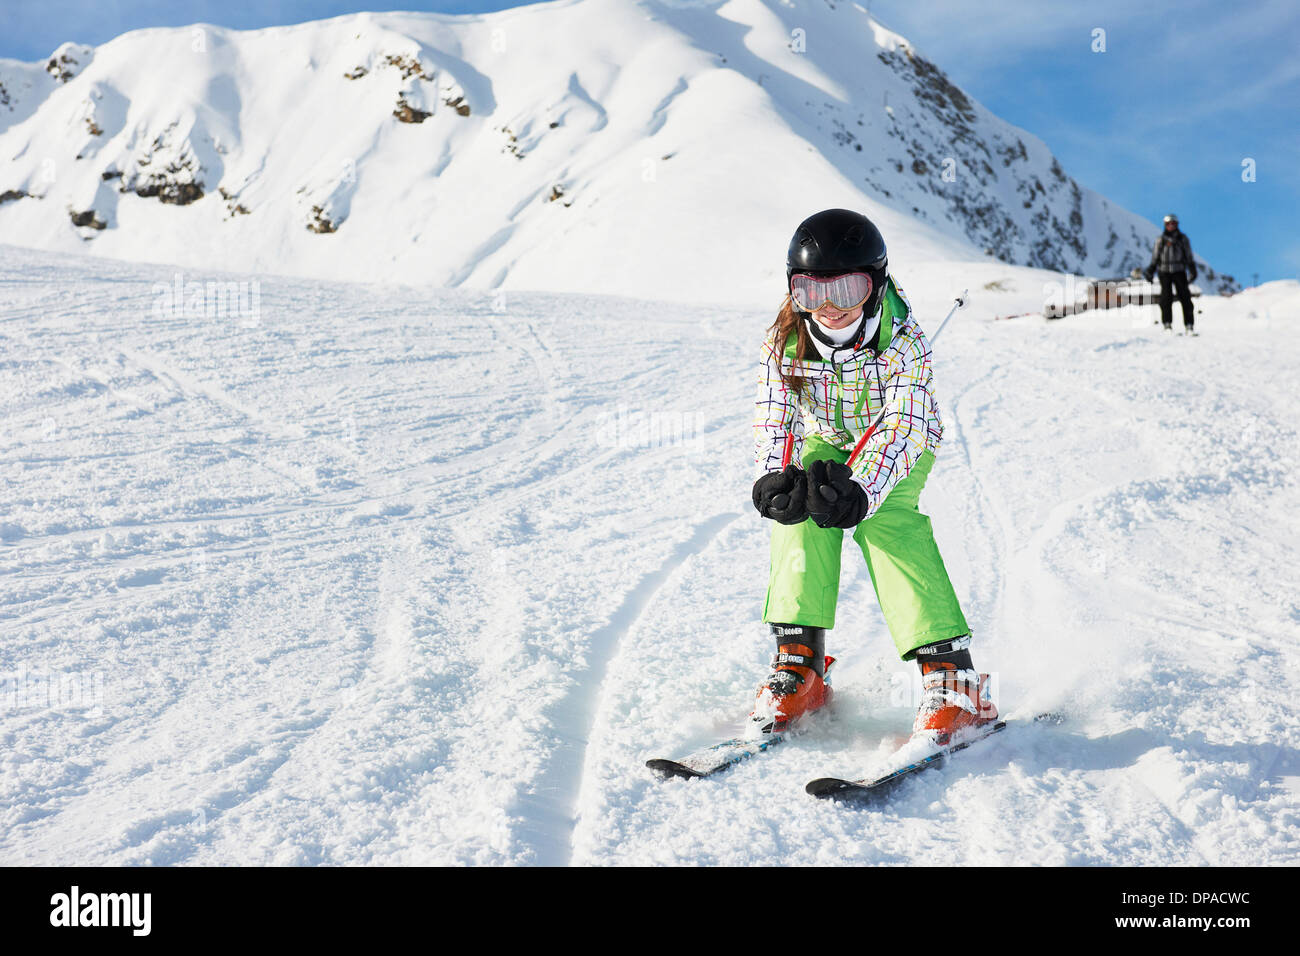 Young girl skiing, Les Arcs, Haute-Savoie, France - Stock Image